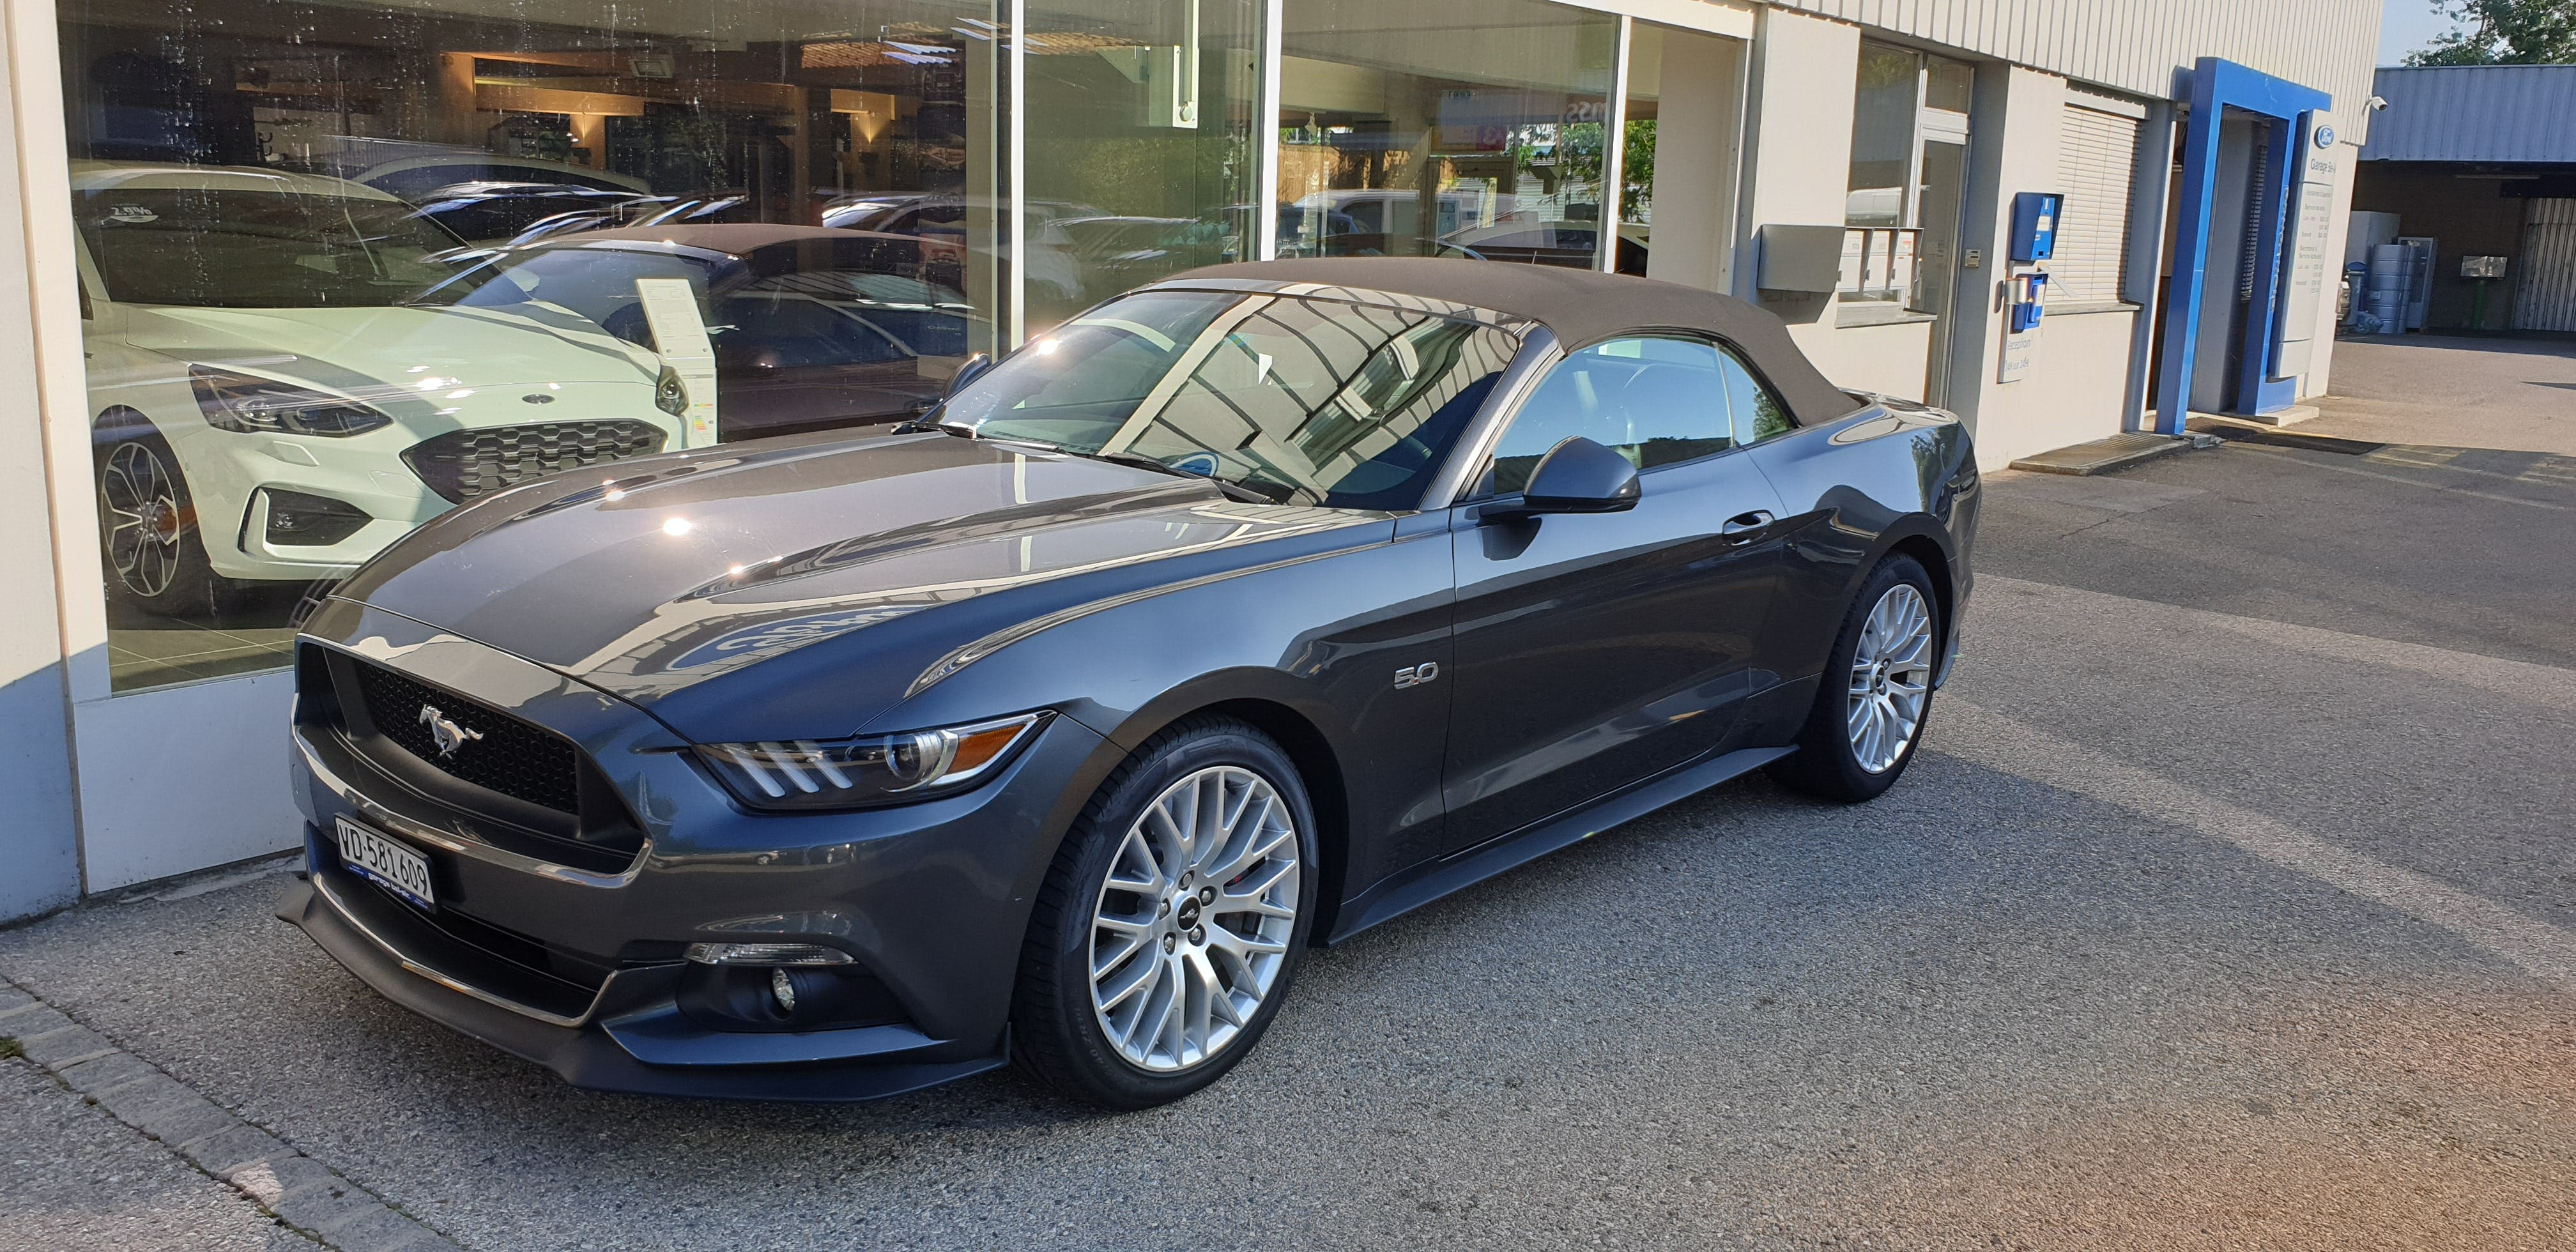 cabriolet Ford Mustang Convertible 5.0 V8 GT